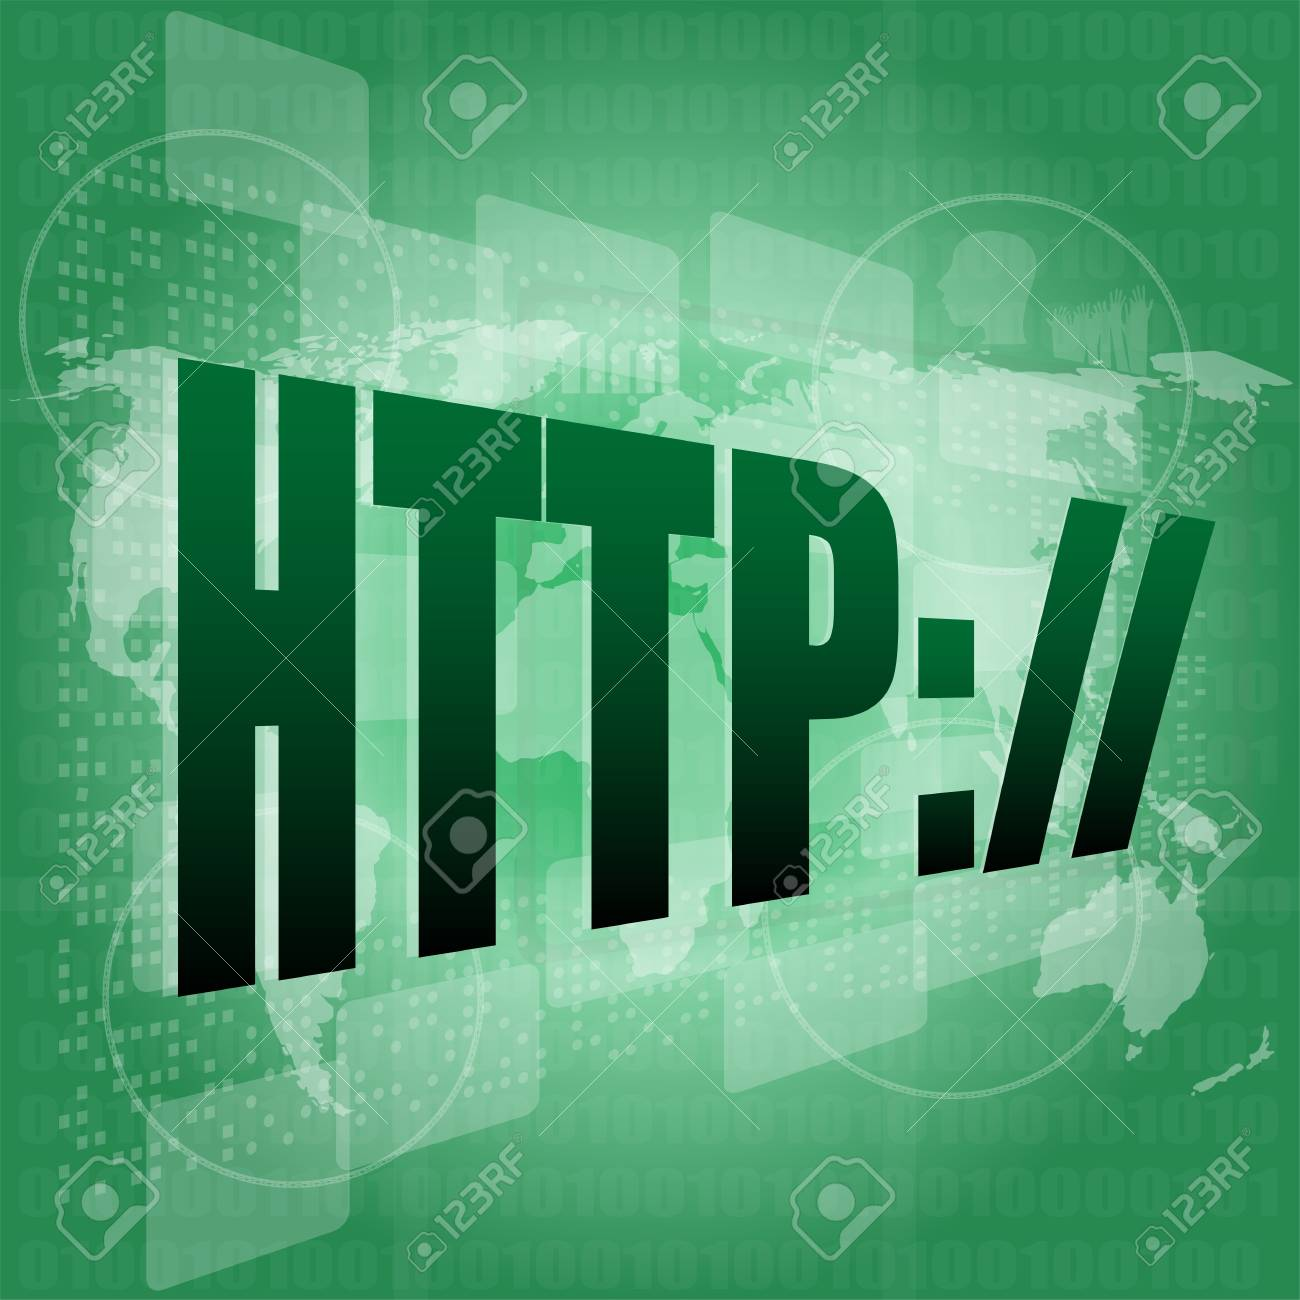 Concept of internet web search engine on touch screen Stock Photo - 17432495